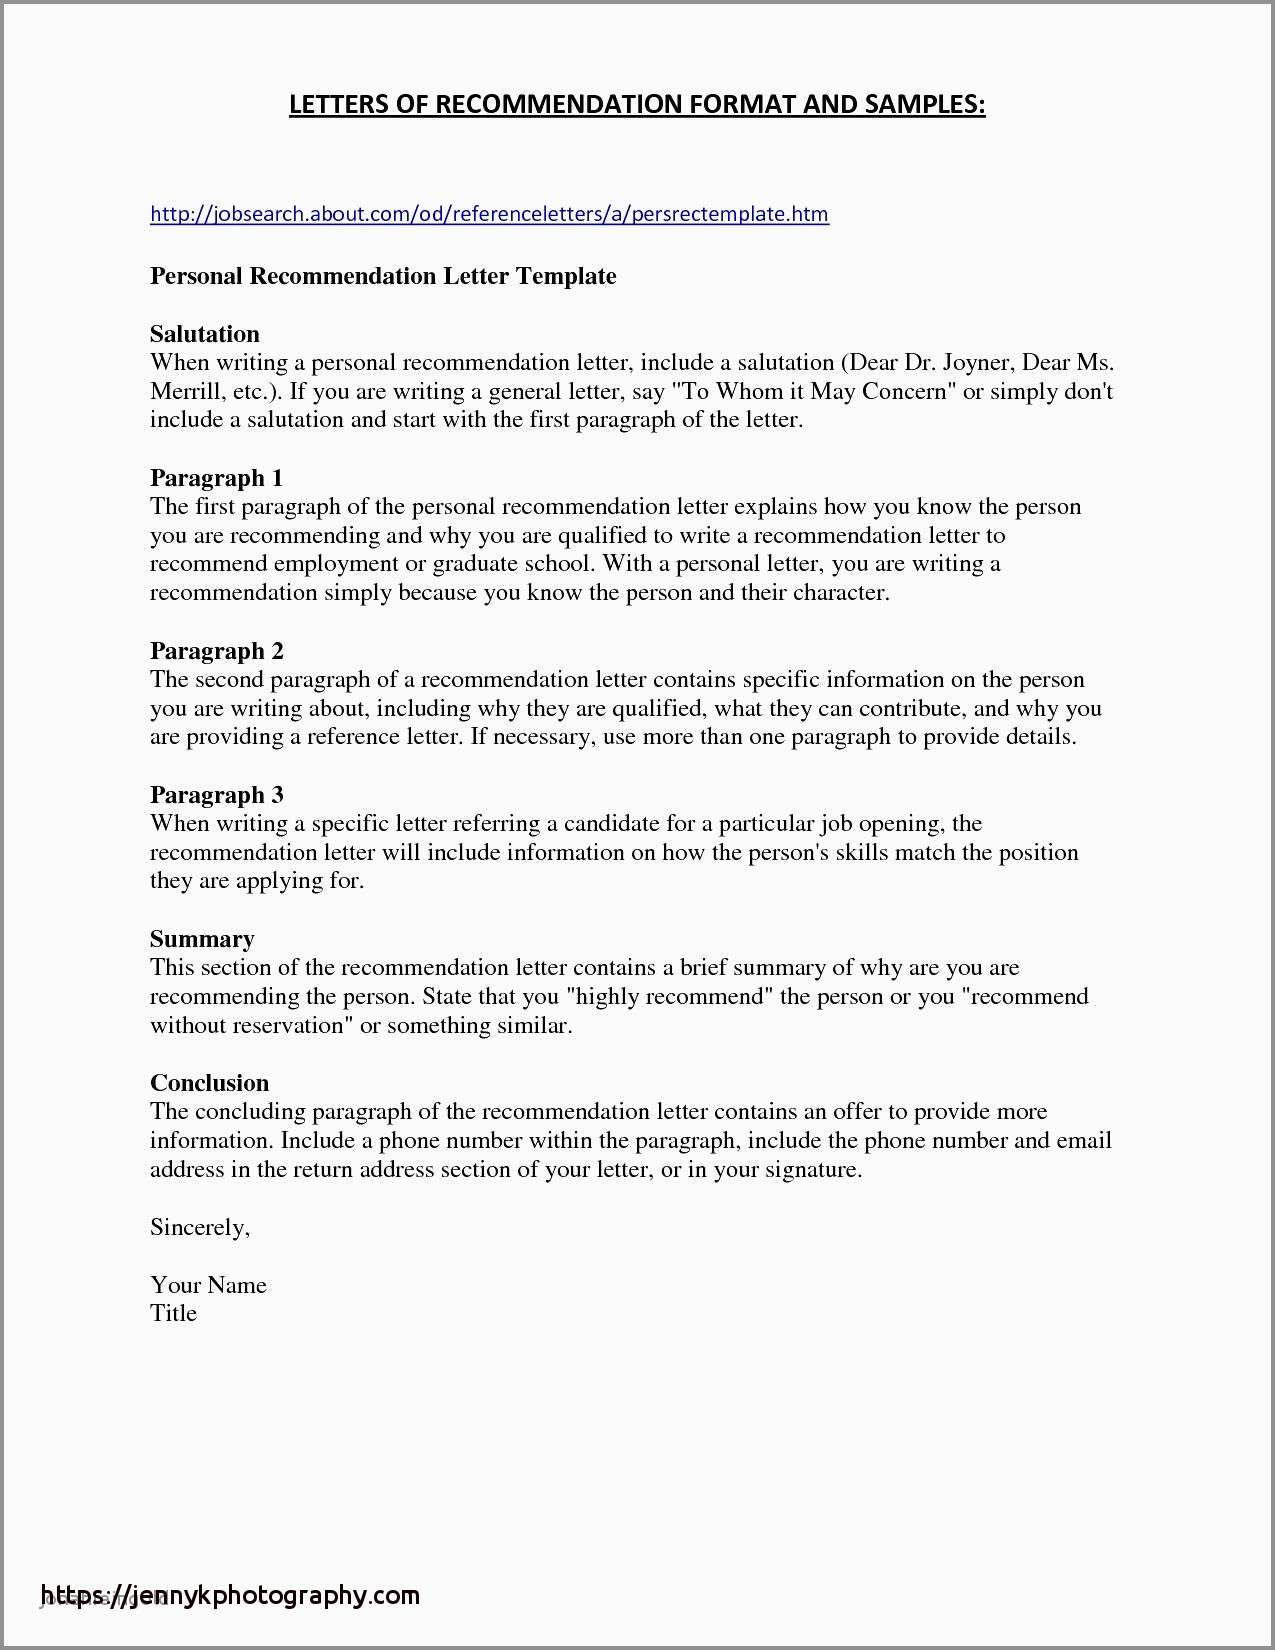 Latex Resume Template Reddit - 39 Unique Cover Letter Sample Reddit